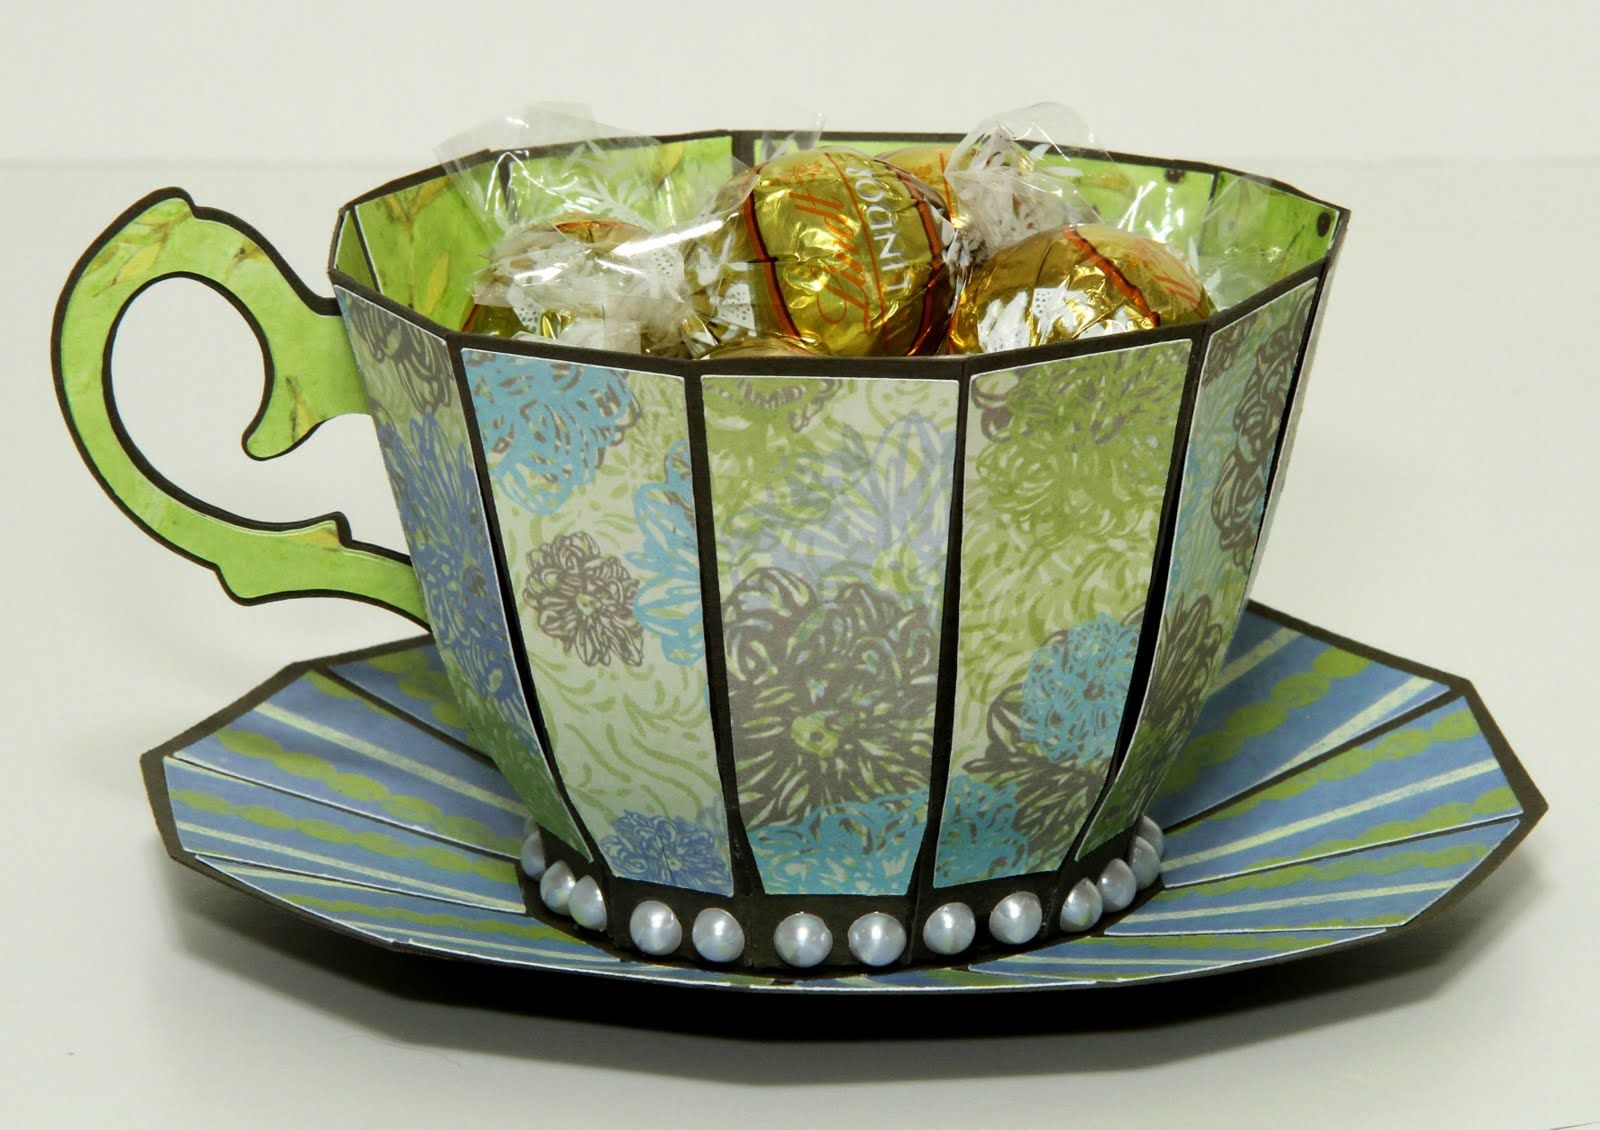 ... the cup with bone colored raffia and white chocolate truffles. Yum